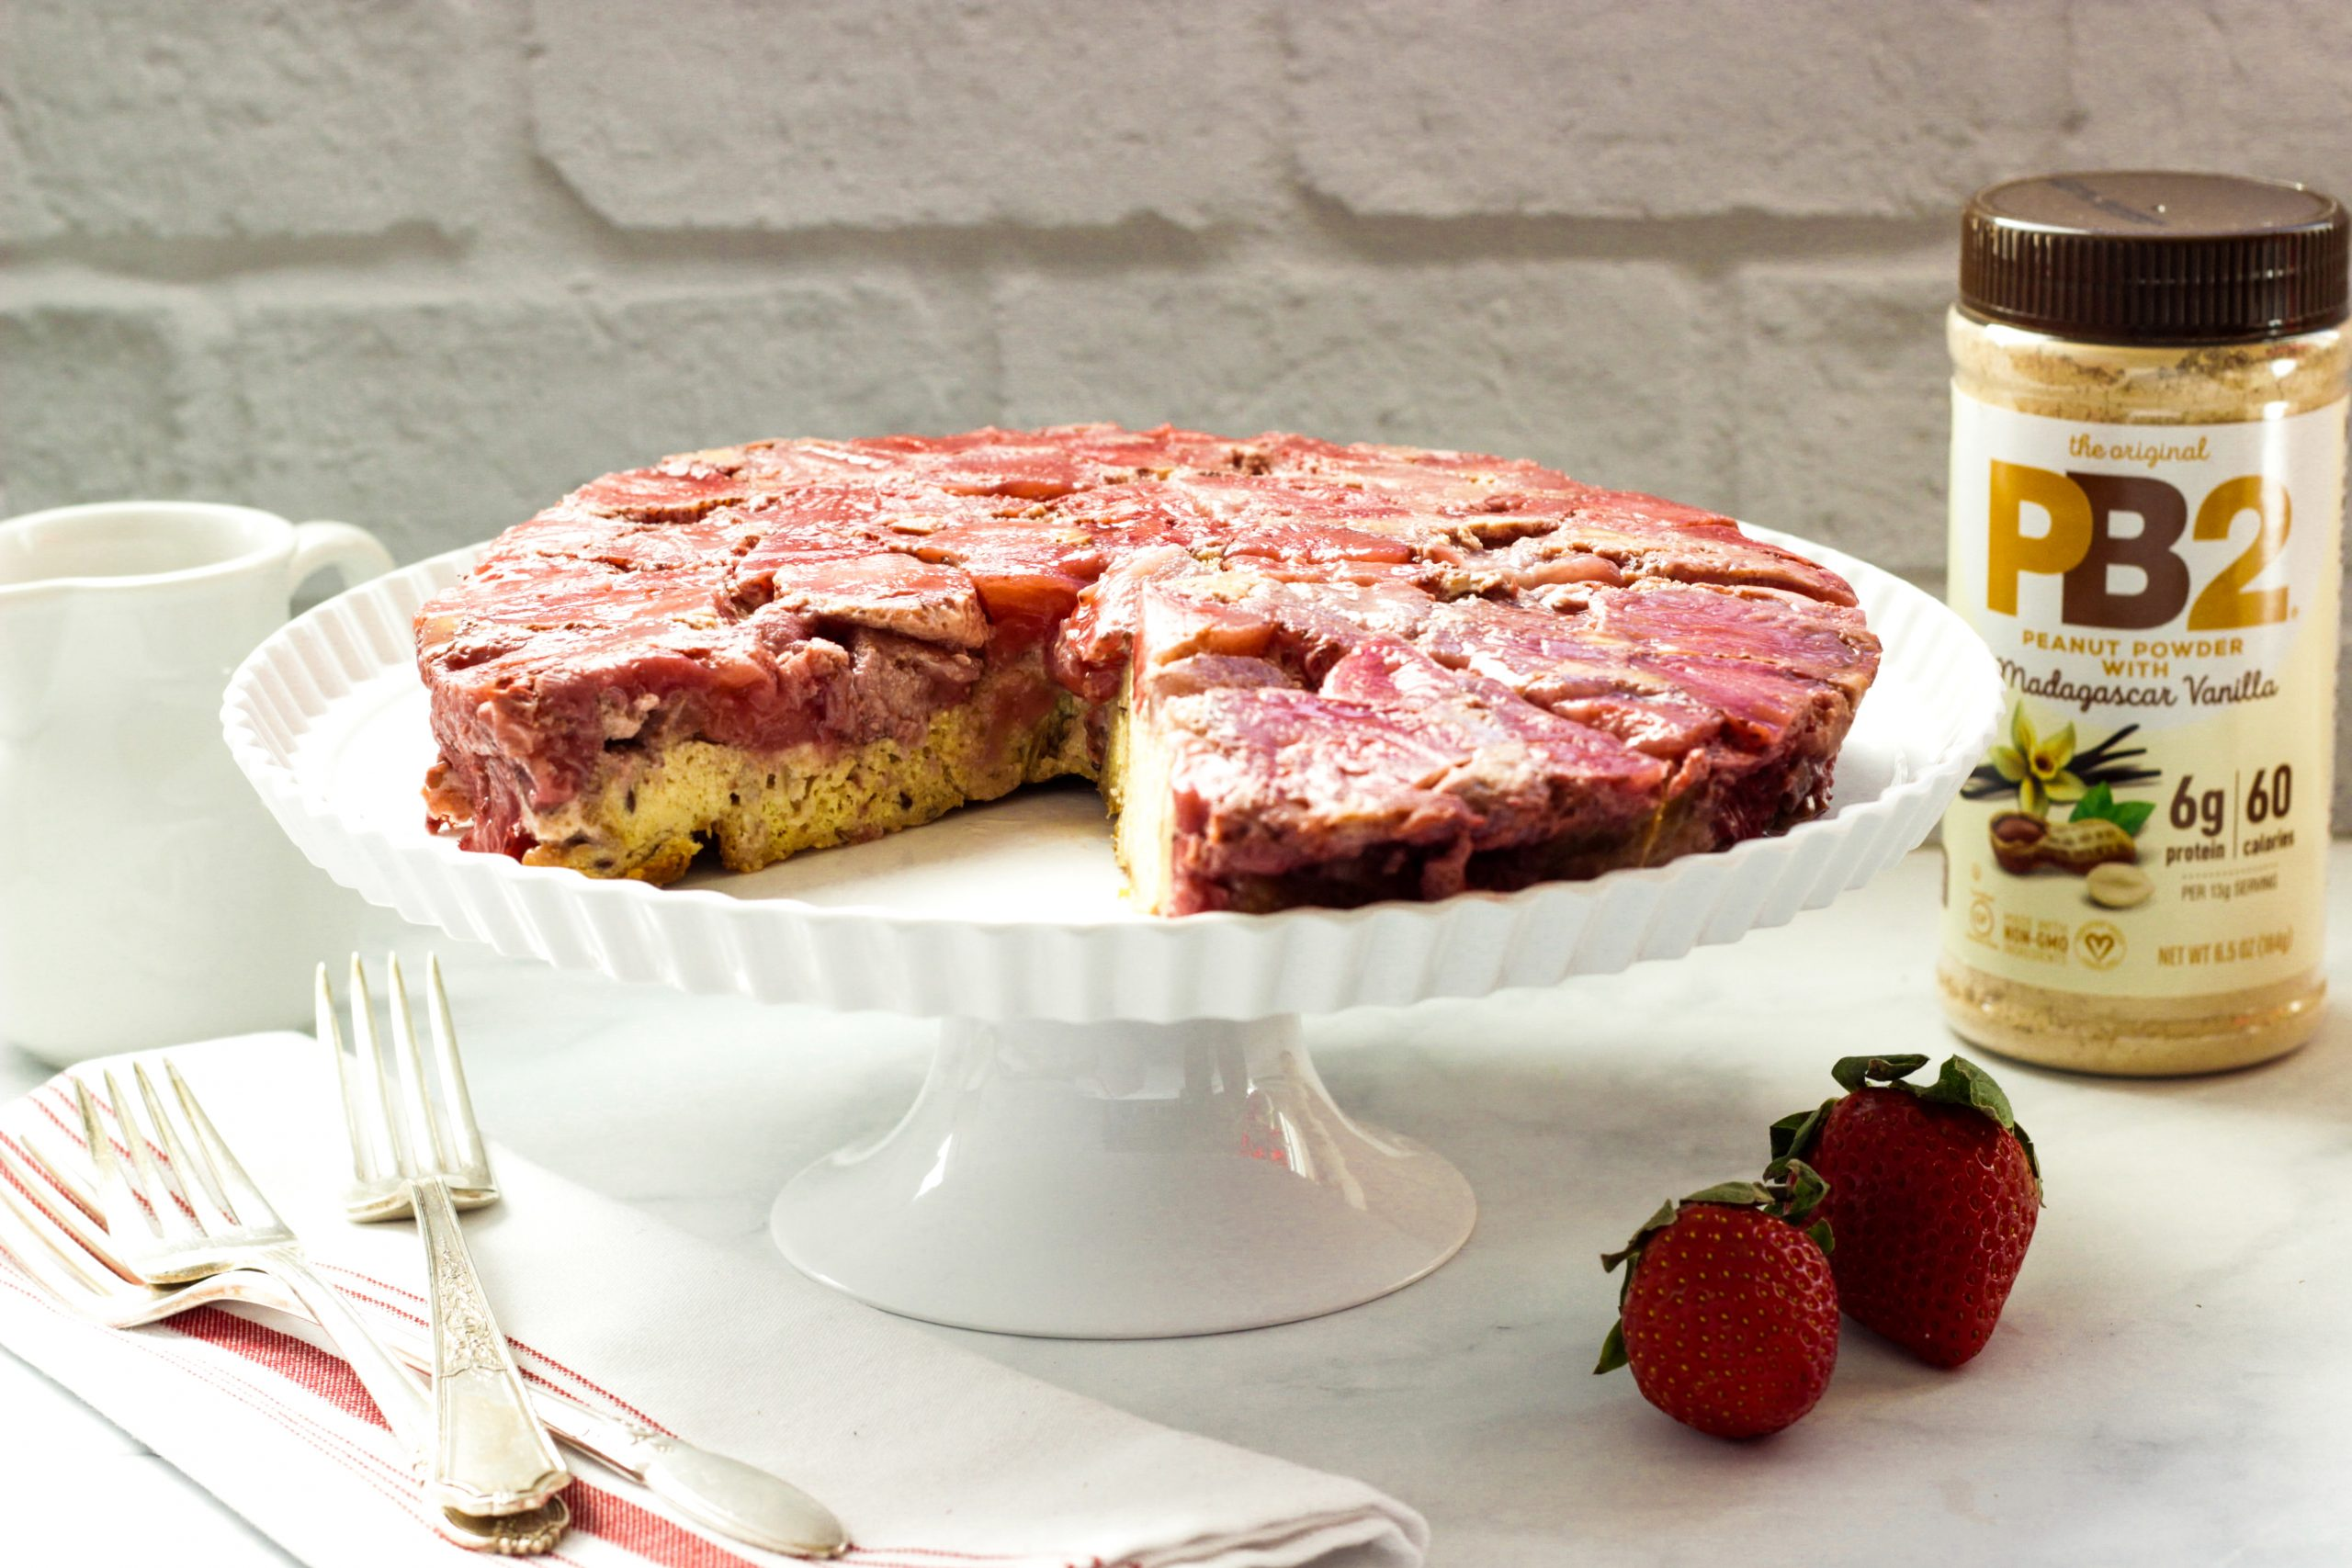 Strawberry Peanut Butter Baked French Toast